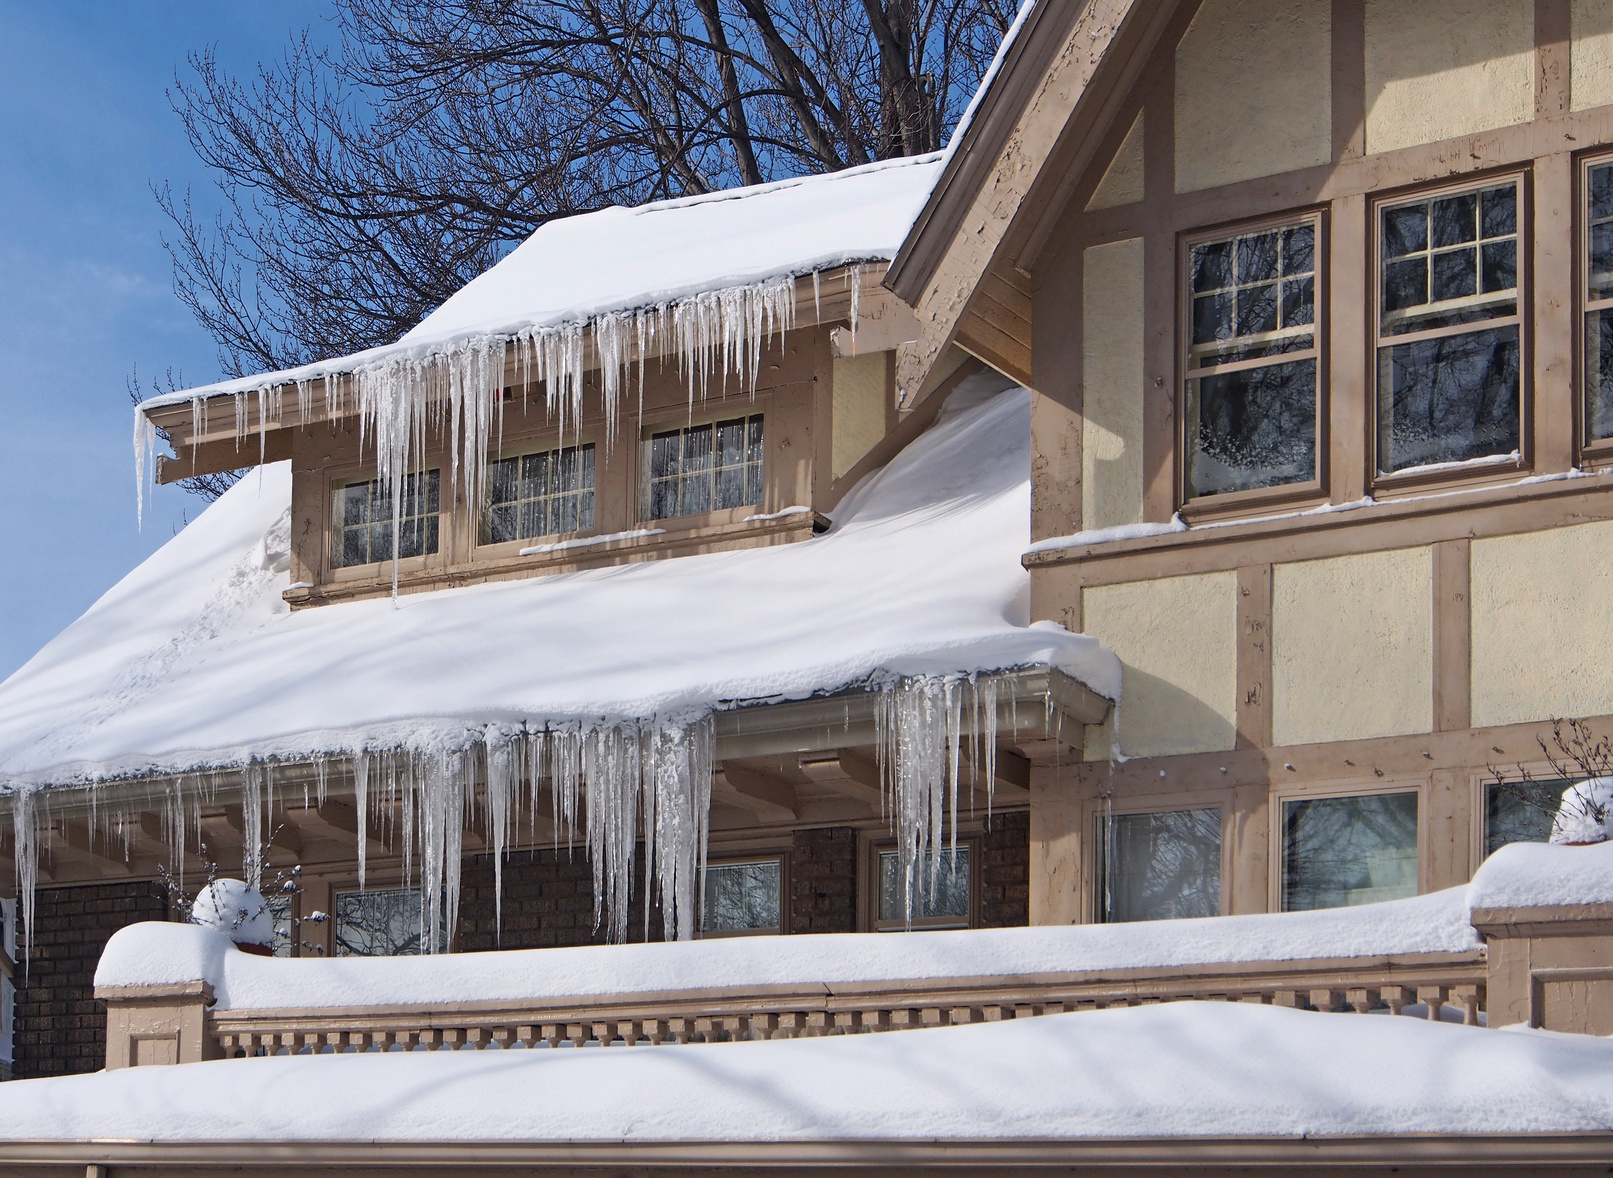 Frozen Pipes: What to Watch for and How to Fix the Problem